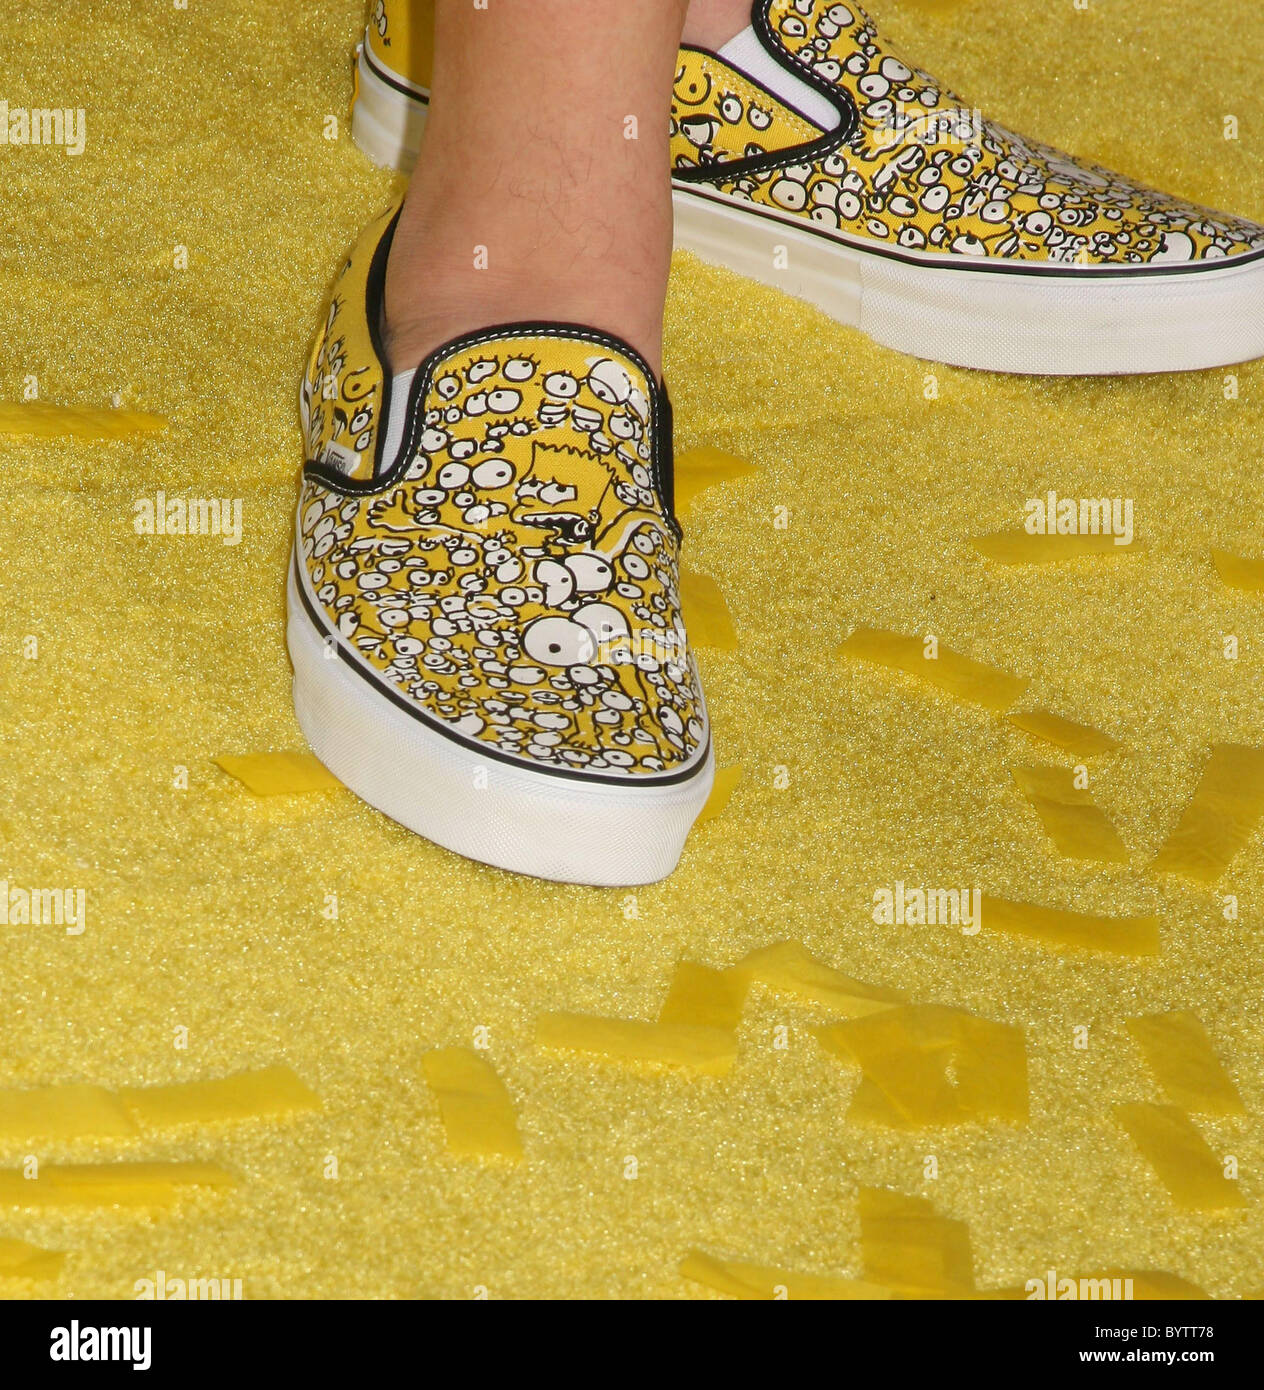 Kevin Smith S Vans With Bart Simpson On It The Simpsons Movie Stock Photo Alamy